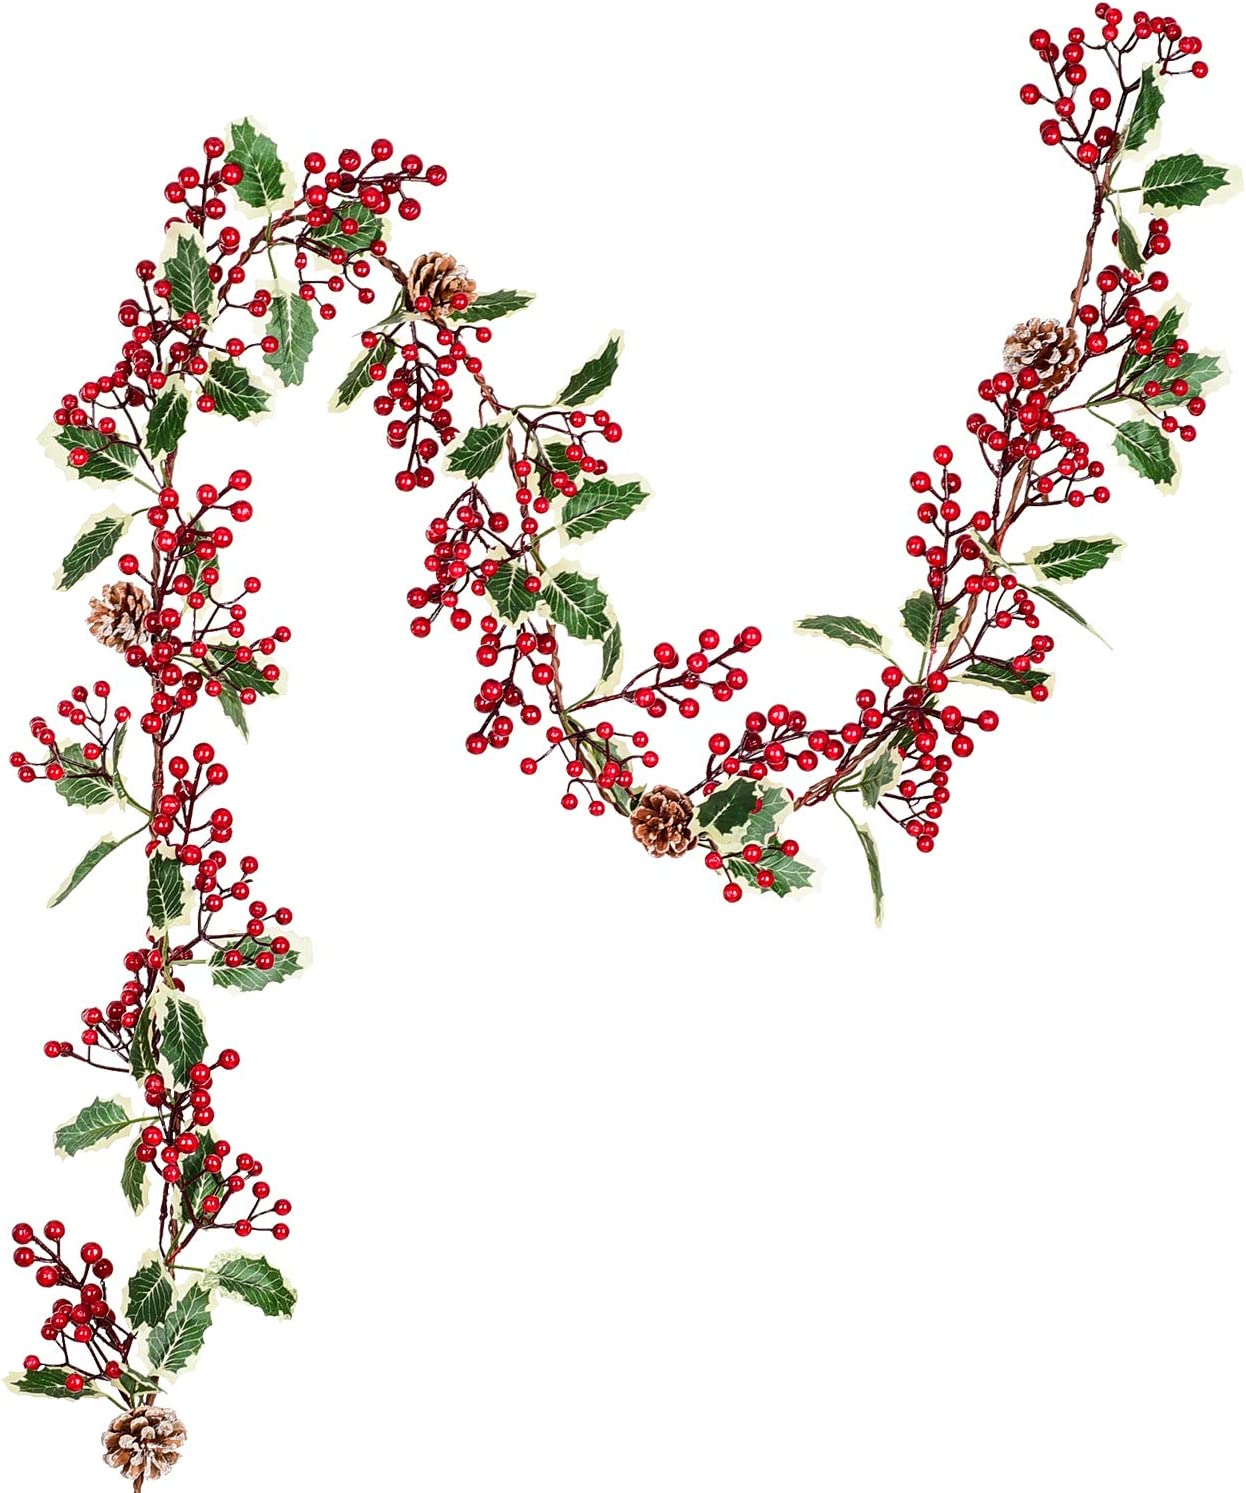 Amazon Com Lvydec Red Berry Garland Christmas Decoration 7ft Artificial Red Berry Garland With Pine Cone And Green Leaves For Holiday Fireplace Stairs Table Decorations Home Kitchen